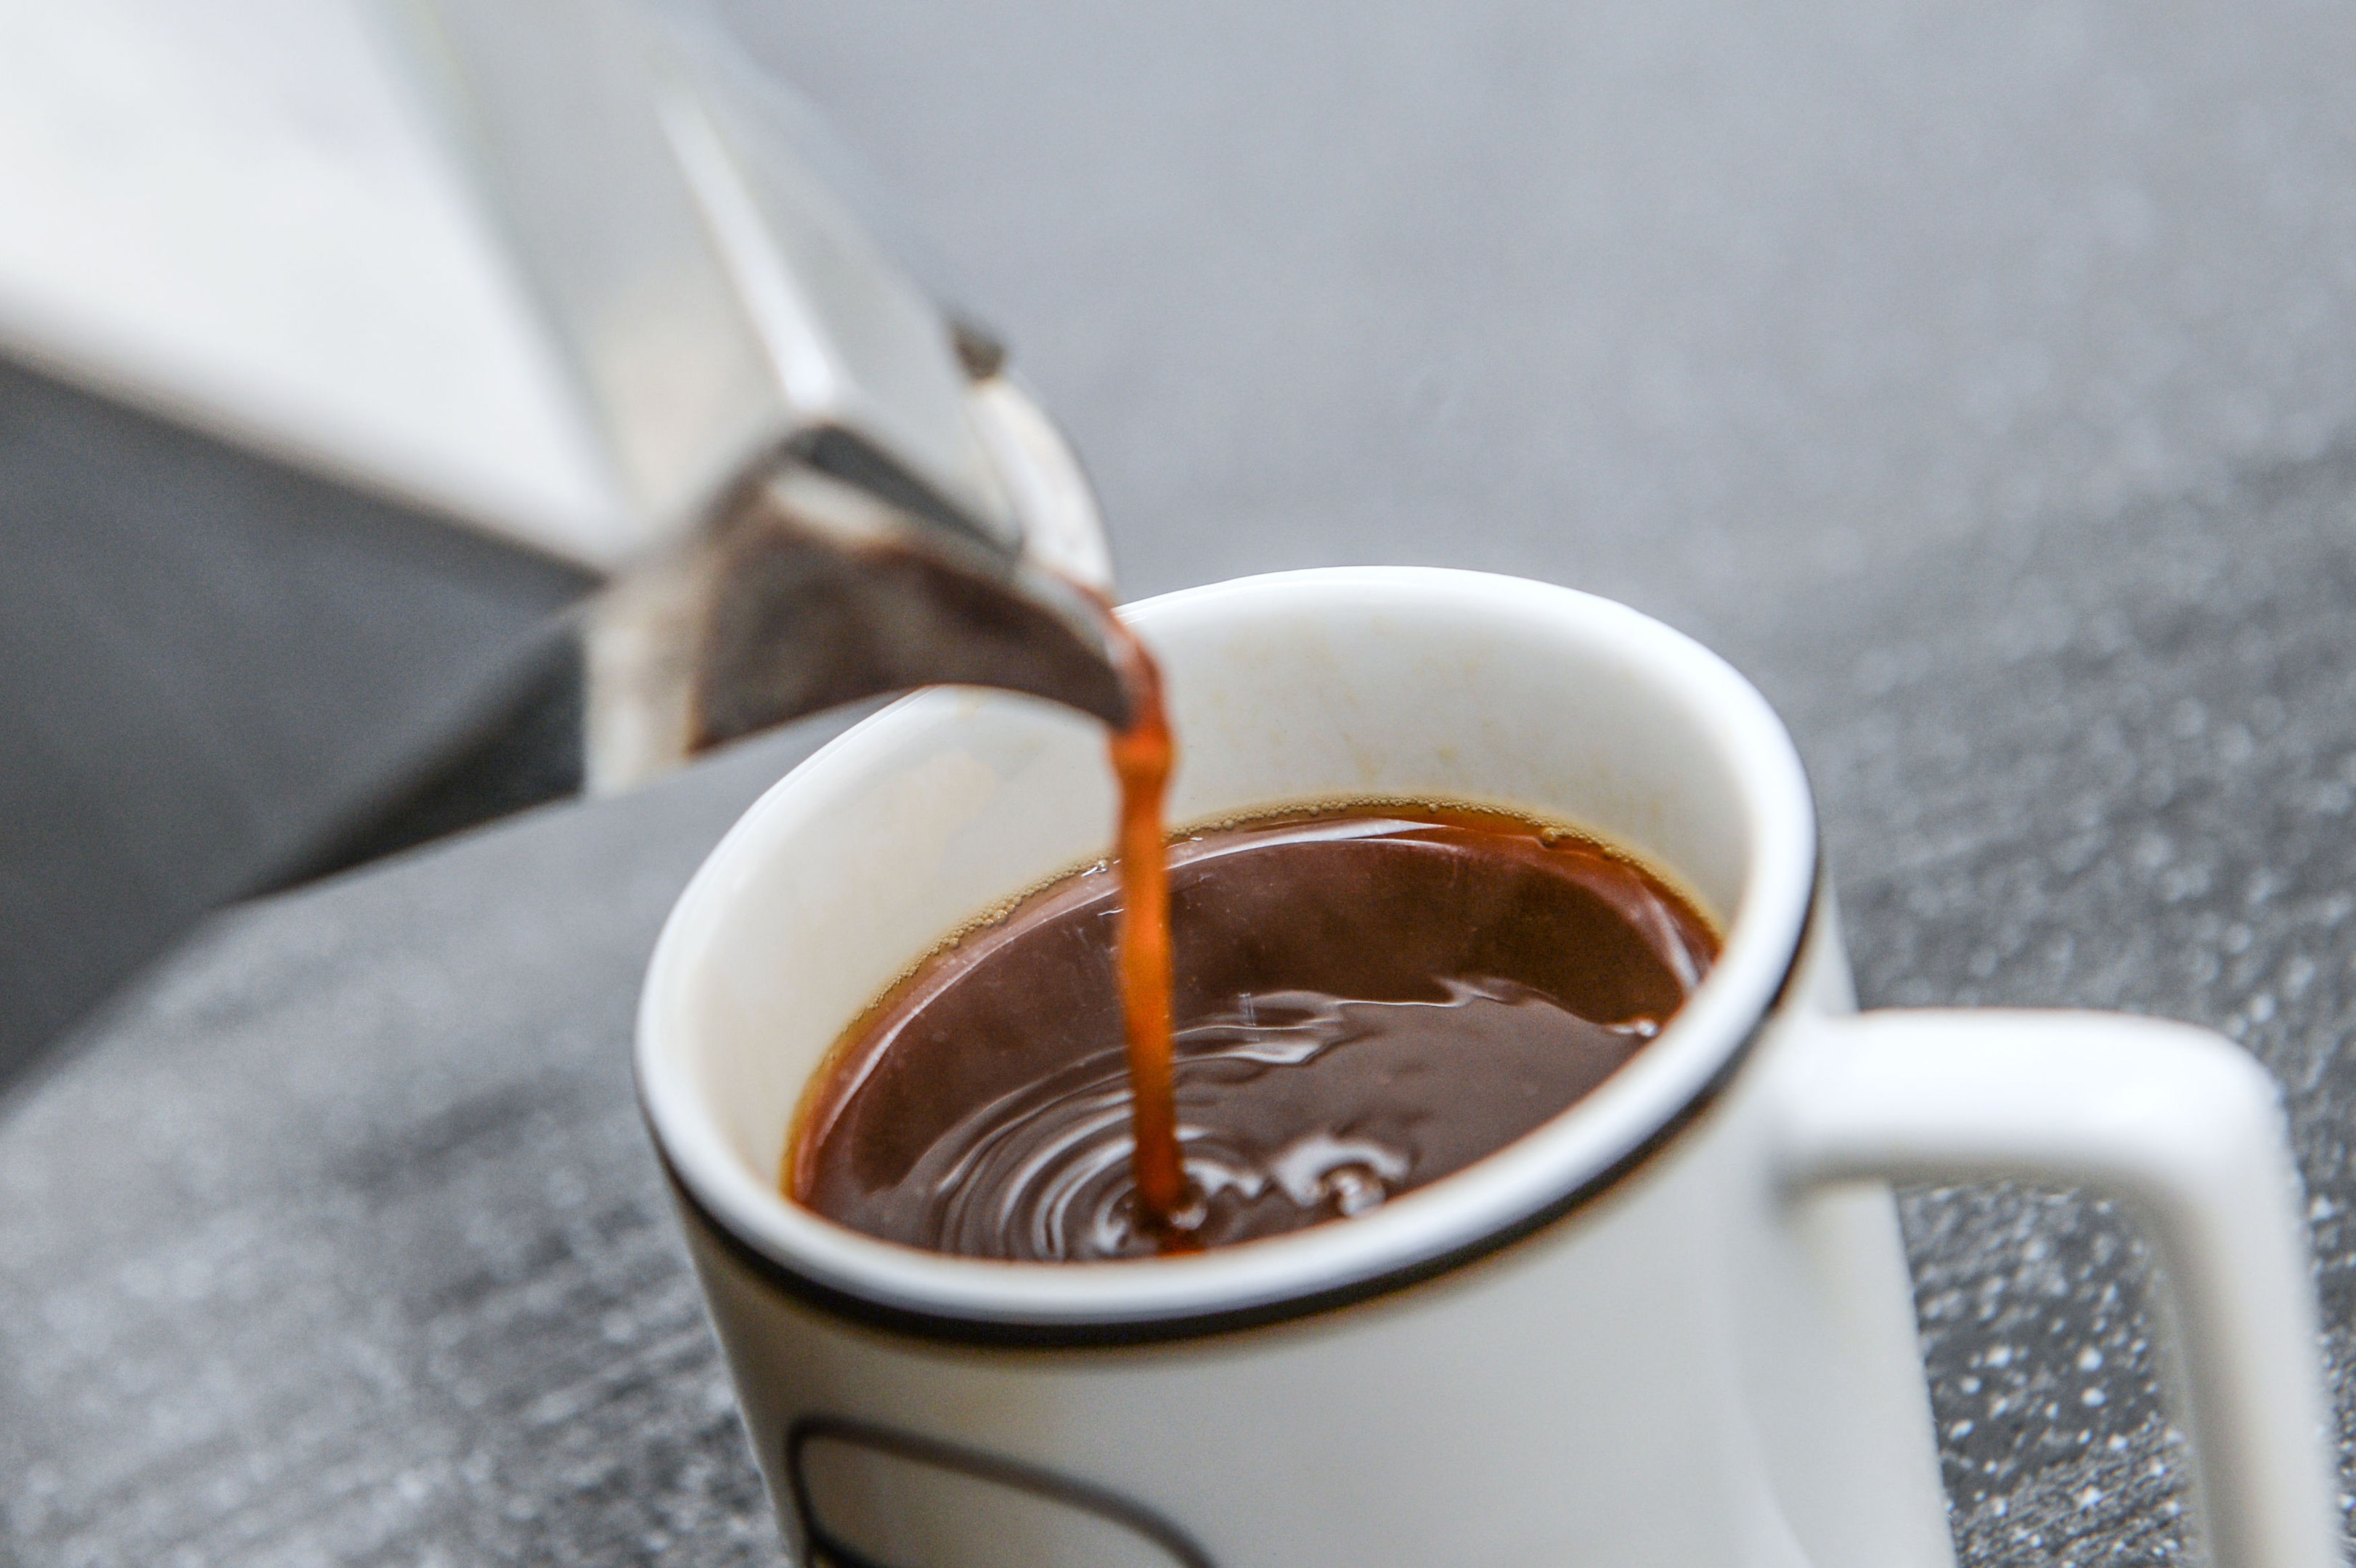 """Coffee is """"more likely to benefit health than harm"""", a new review has found. (Anthony Devlin/PA Wire)"""